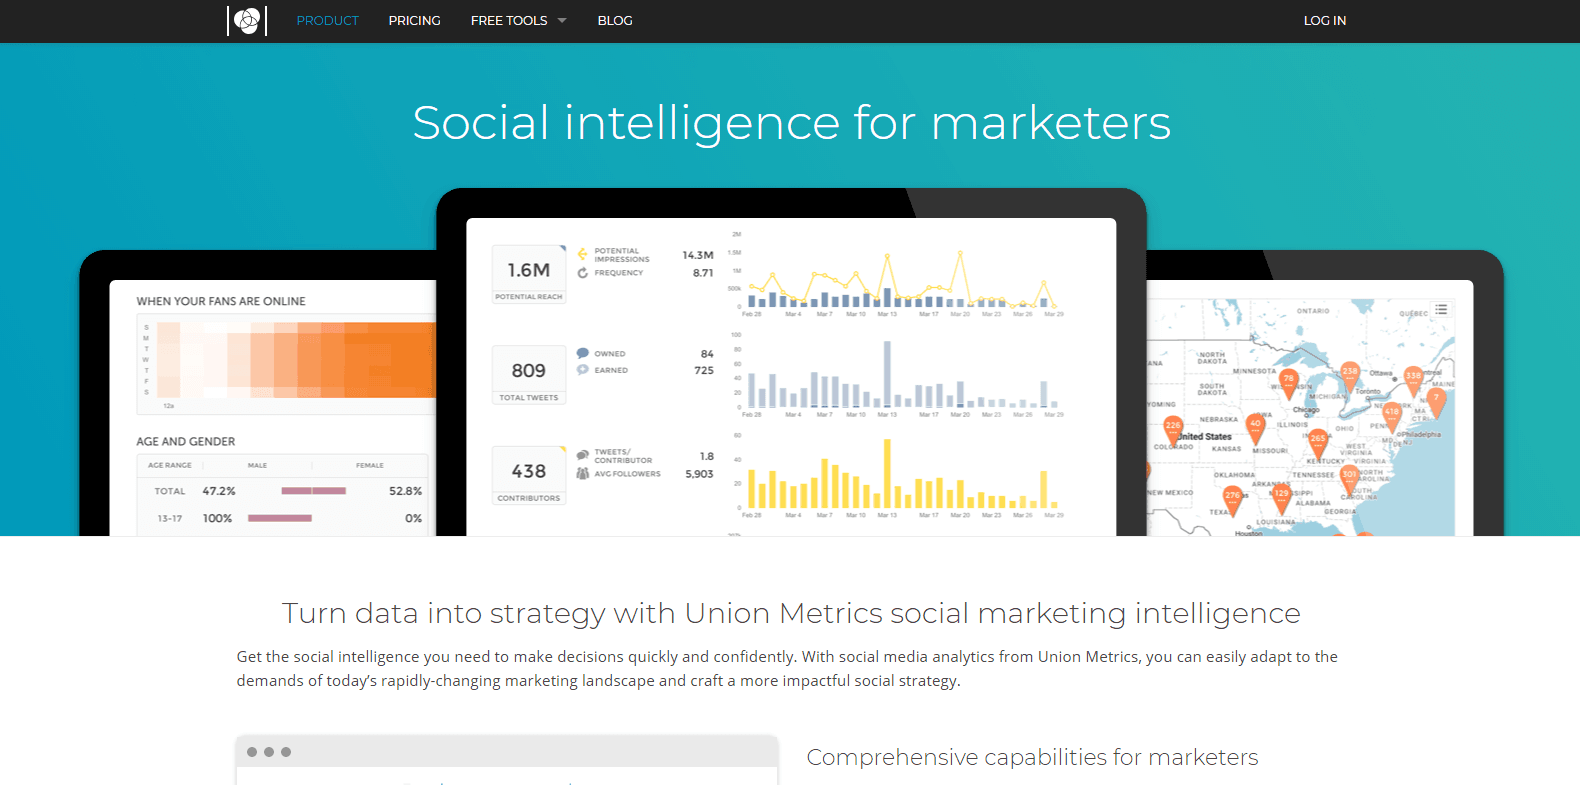 Union Metrics Instagram Analytics Tools